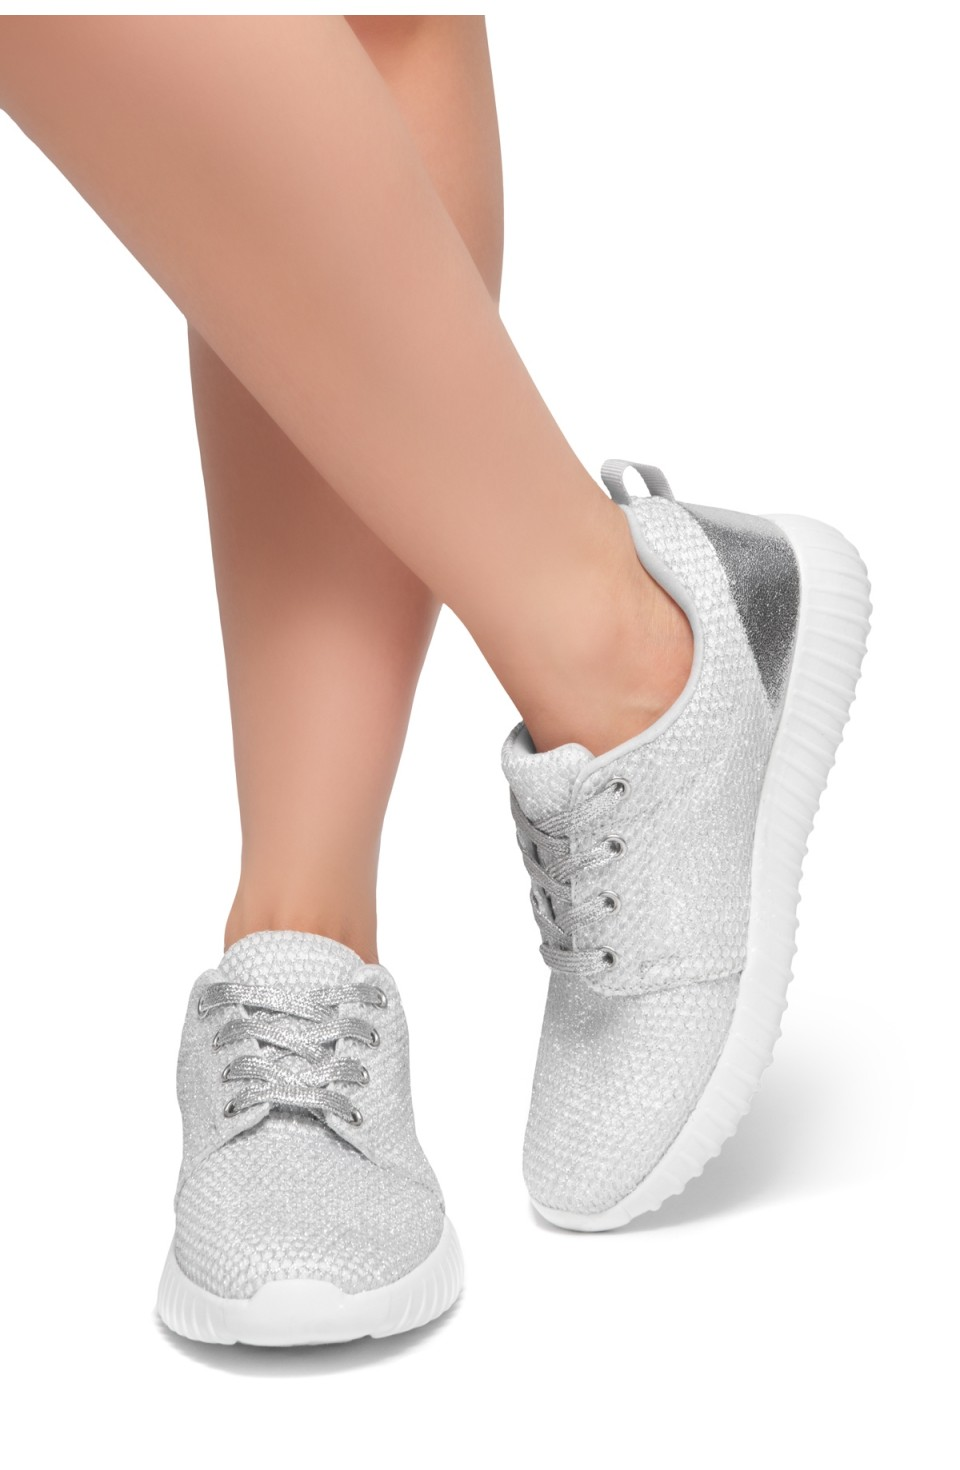 HerStyle EASY RIDER- Front Lace Up, Spec Flyknit Glitter Contrast Chic Style Sneakers (Silver)